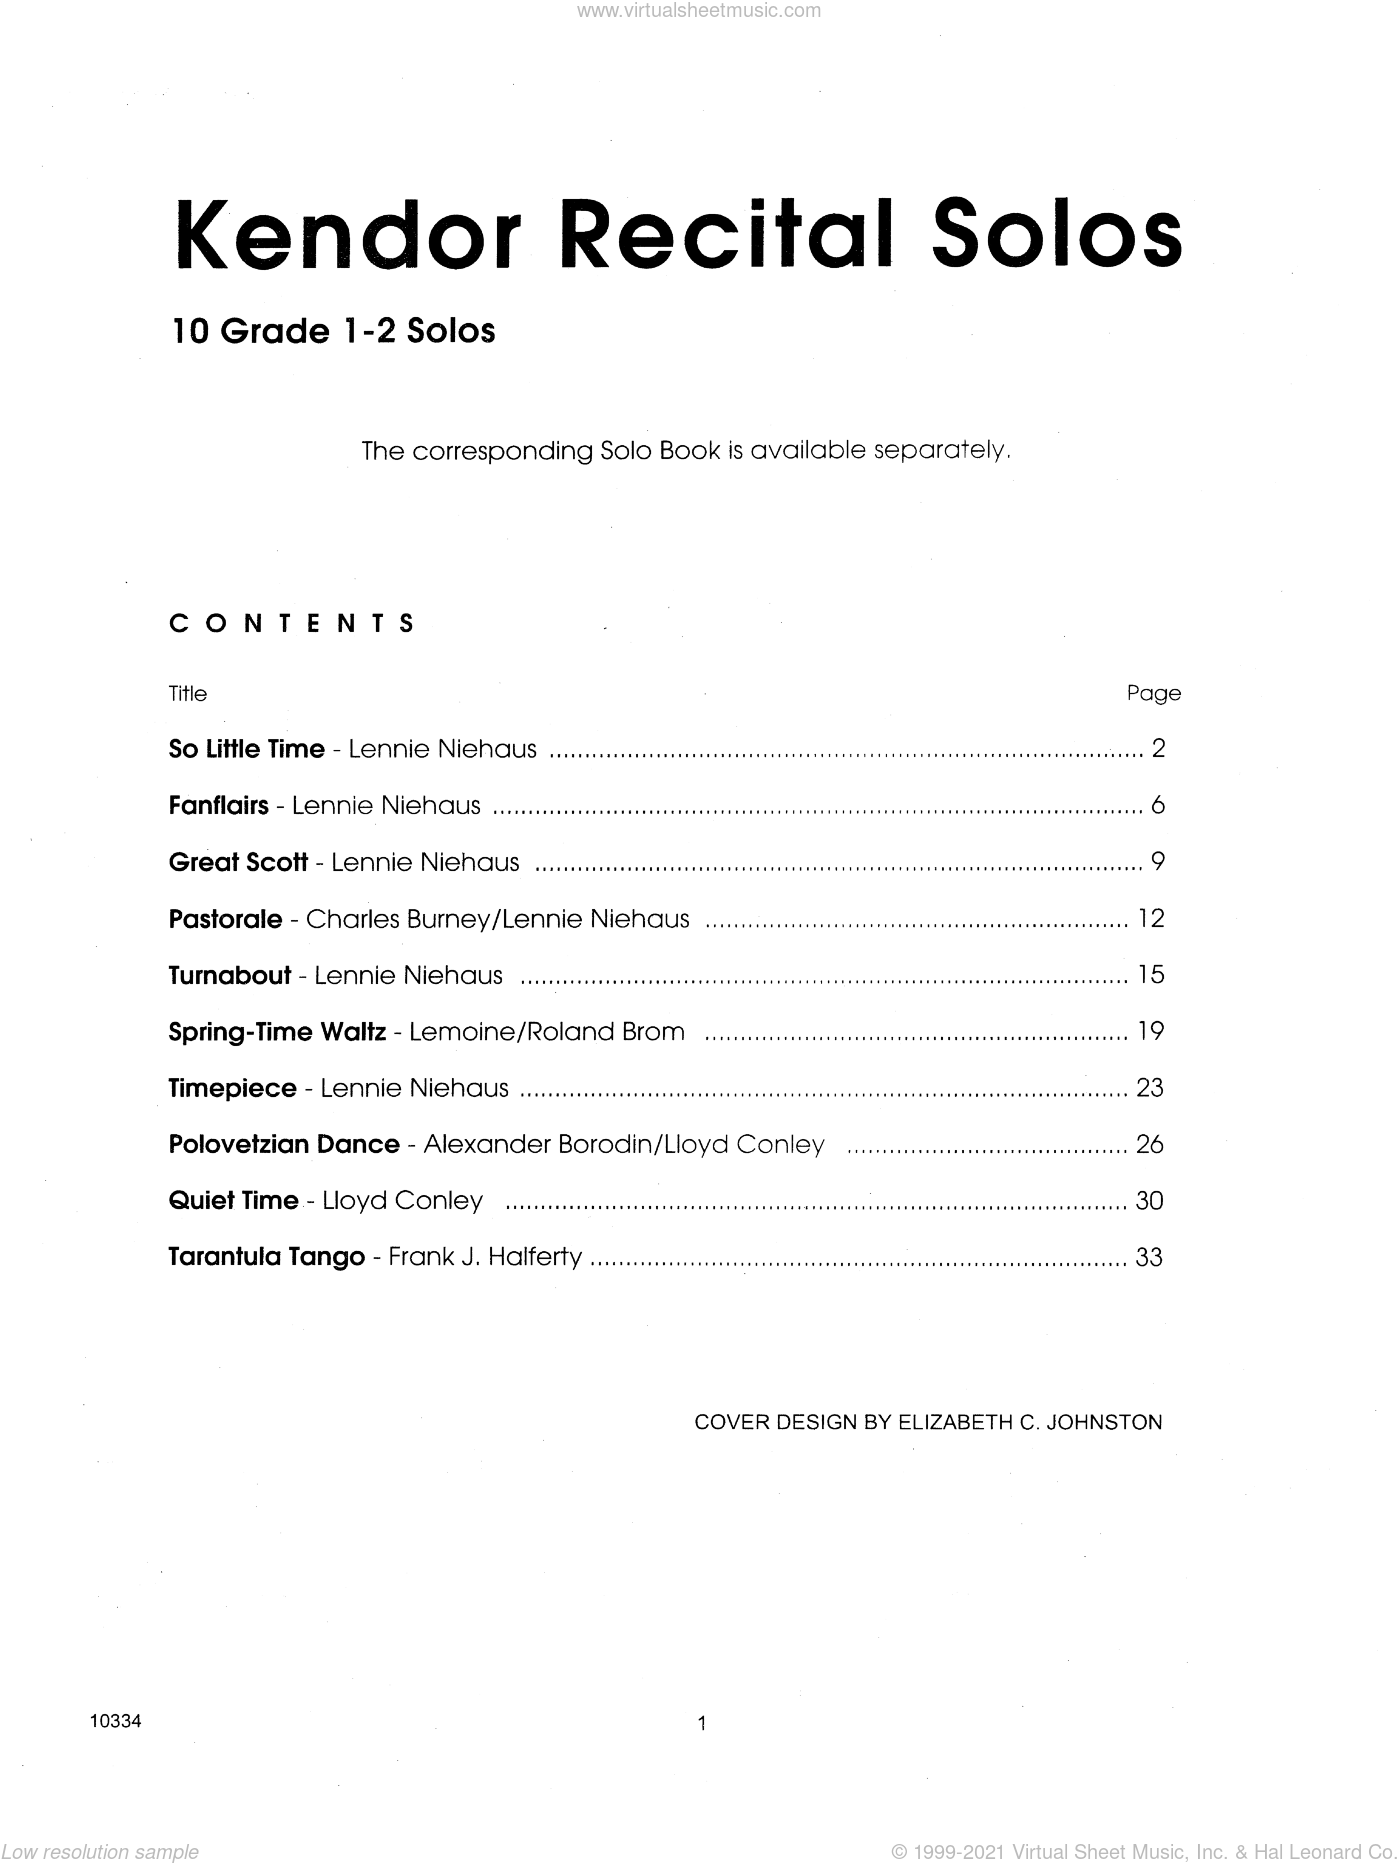 Kendor Recital Solos - Clarinet (Piano Accompaniment Book Only) sheet music for clarinet and piano, intermediate skill level